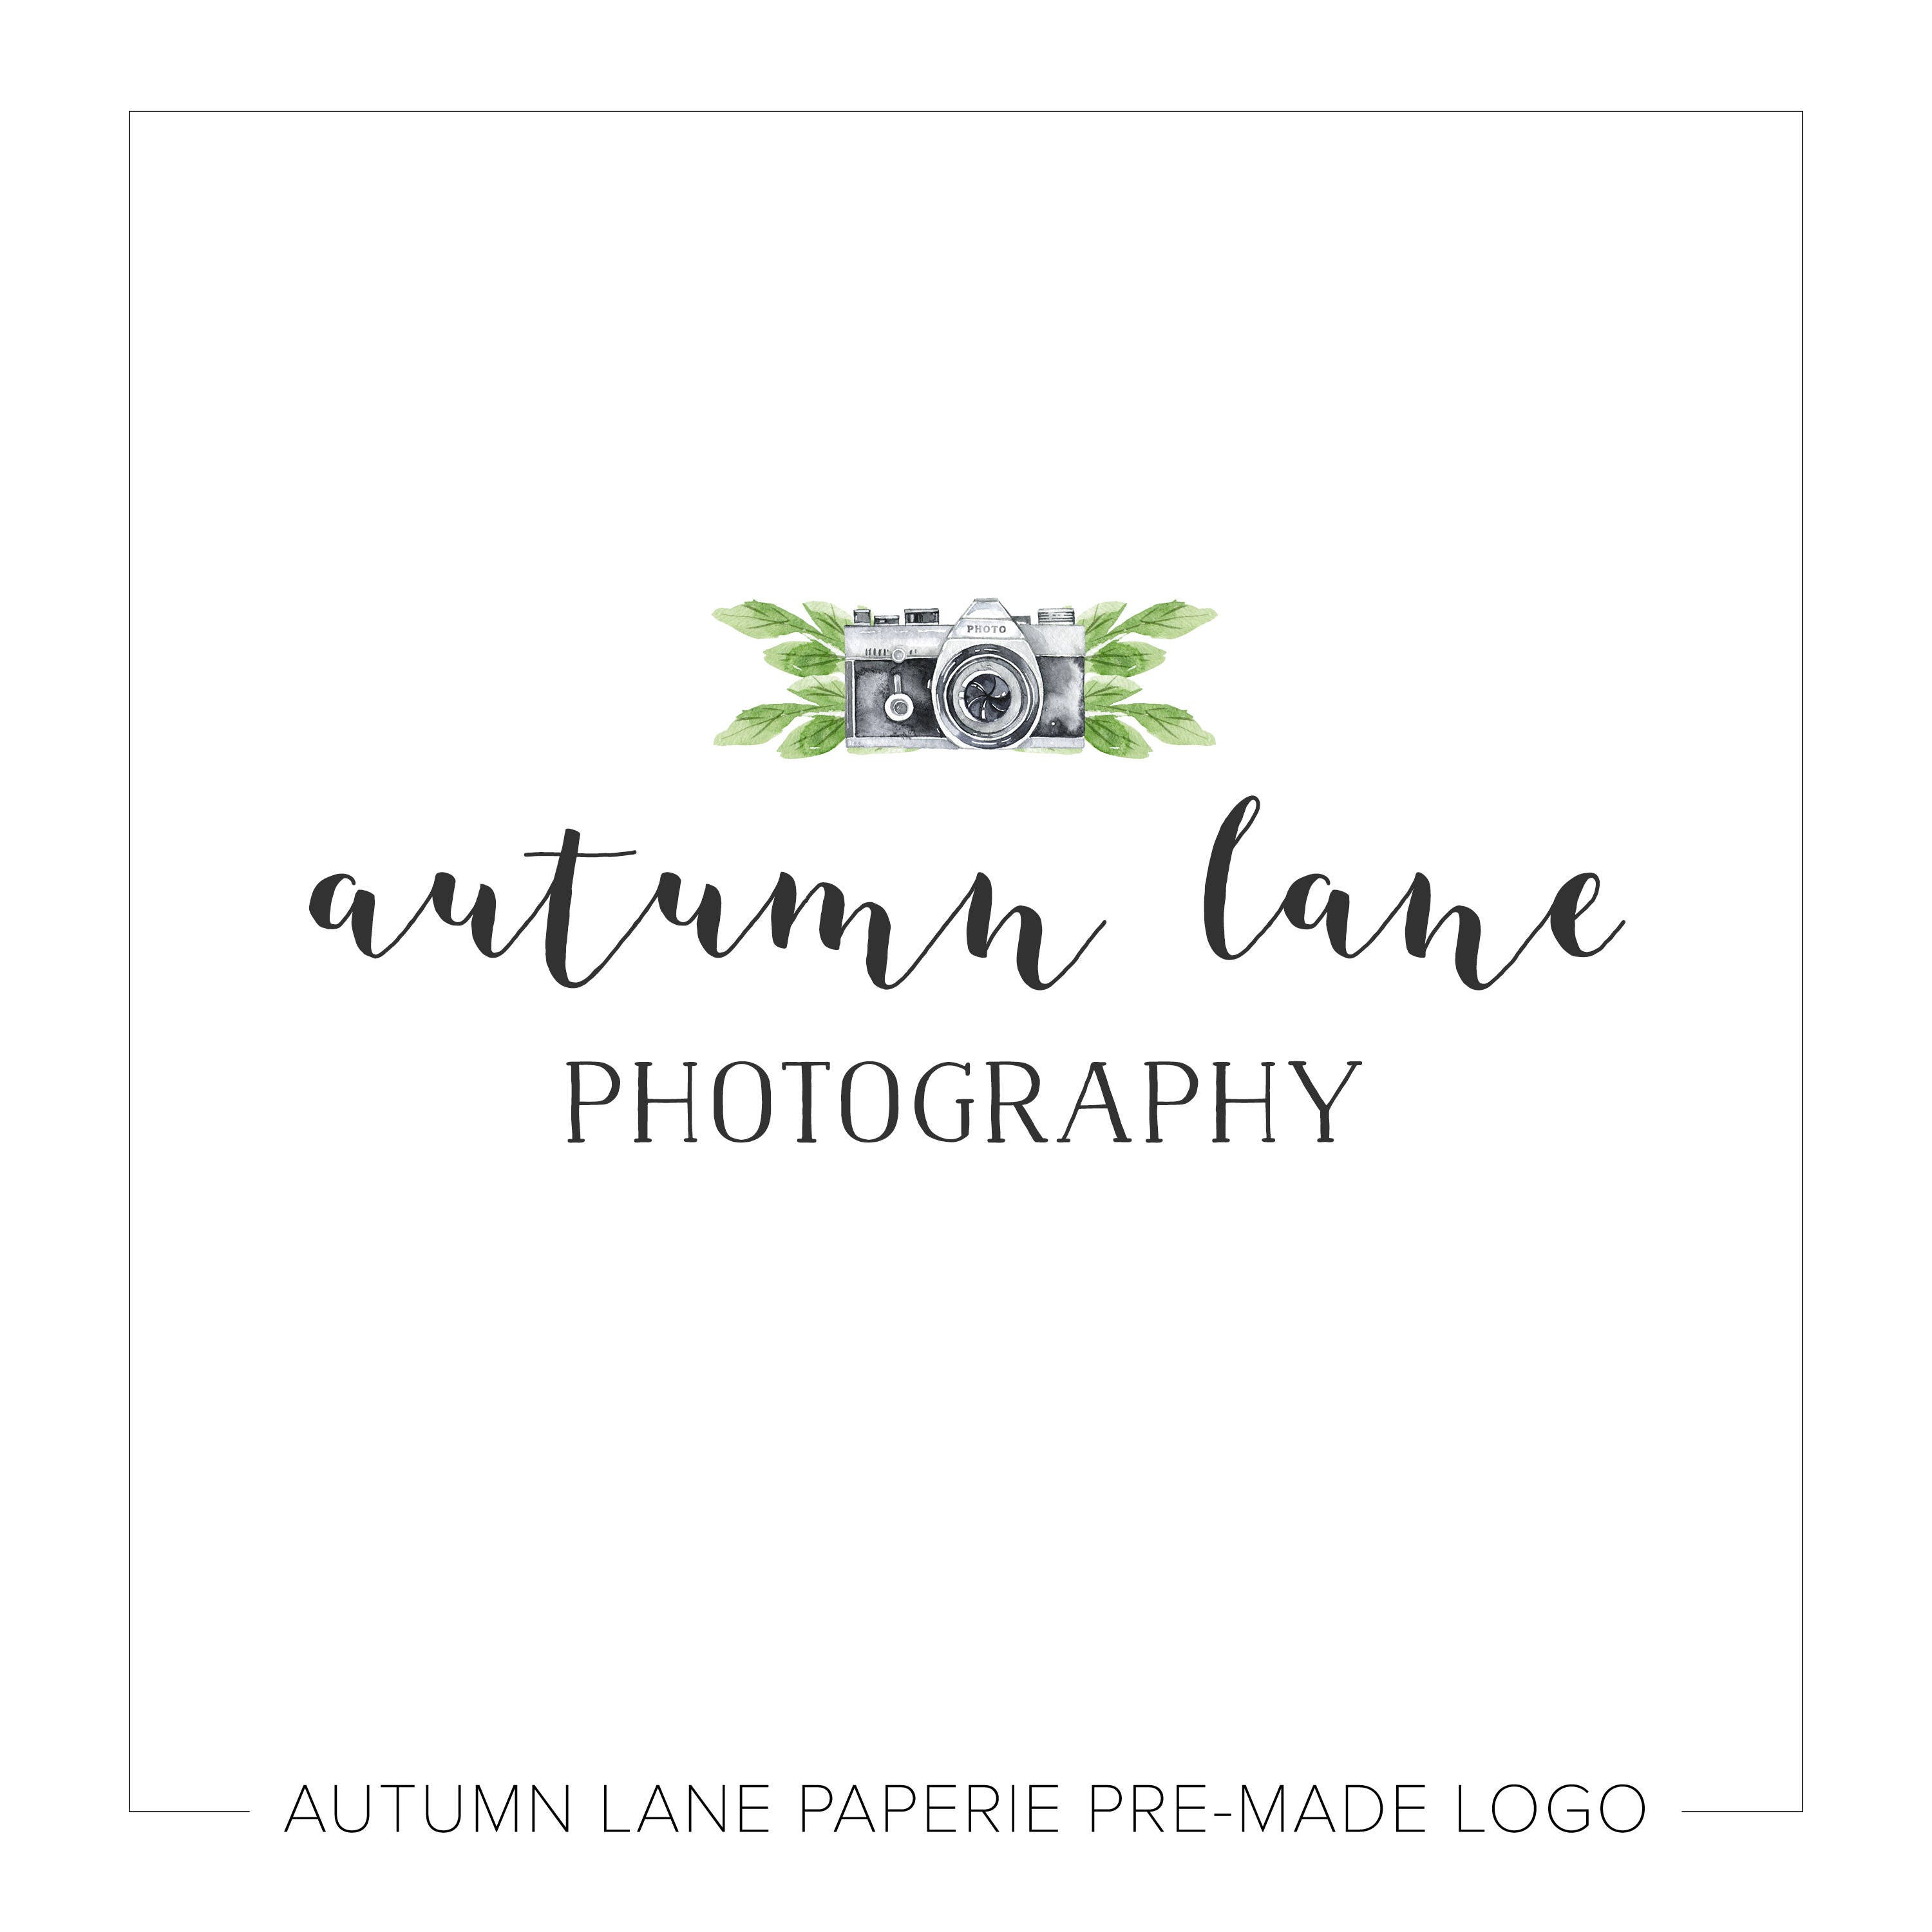 premade logo design watermark logo watercolor logo photography